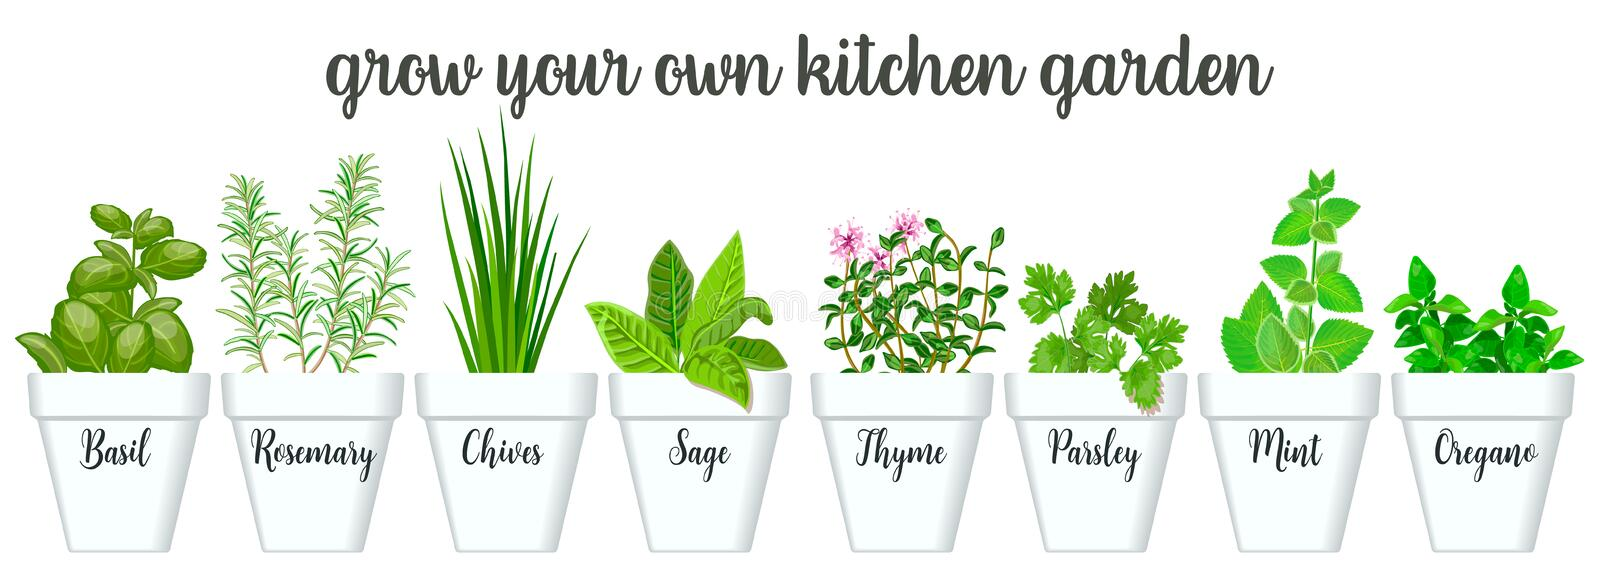 Set of culinary herbs in white pots with labels. Green growing basil, sage, rosemary, chives, thyme, parsley, mint, oregano vector illustration